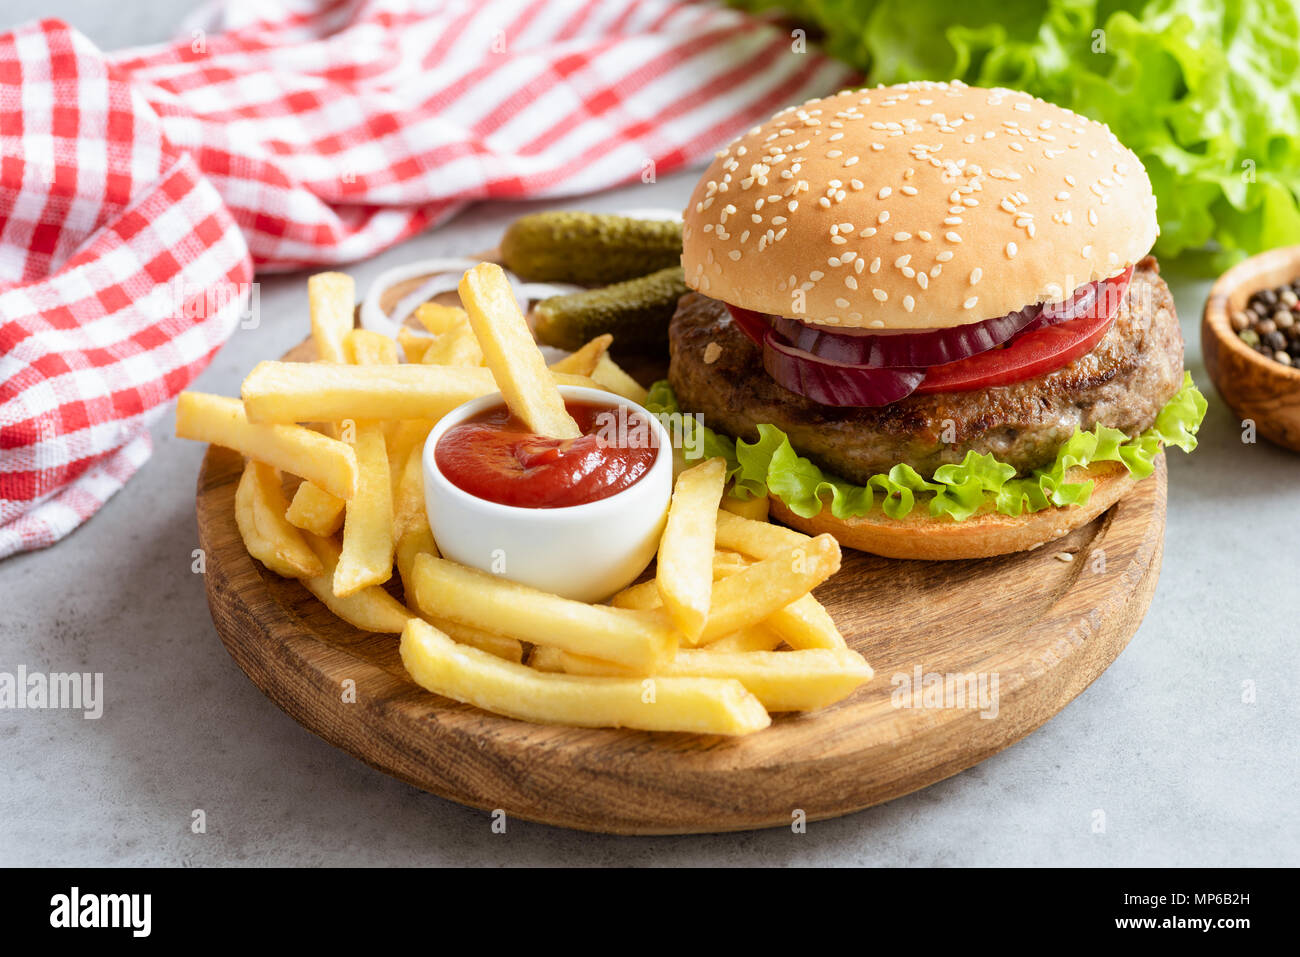 Homemade beef burger and french fries with ketchup on wooden board on gray concrete background. Horizontal composition. Tasty burger and fries. Fast f - Stock Image